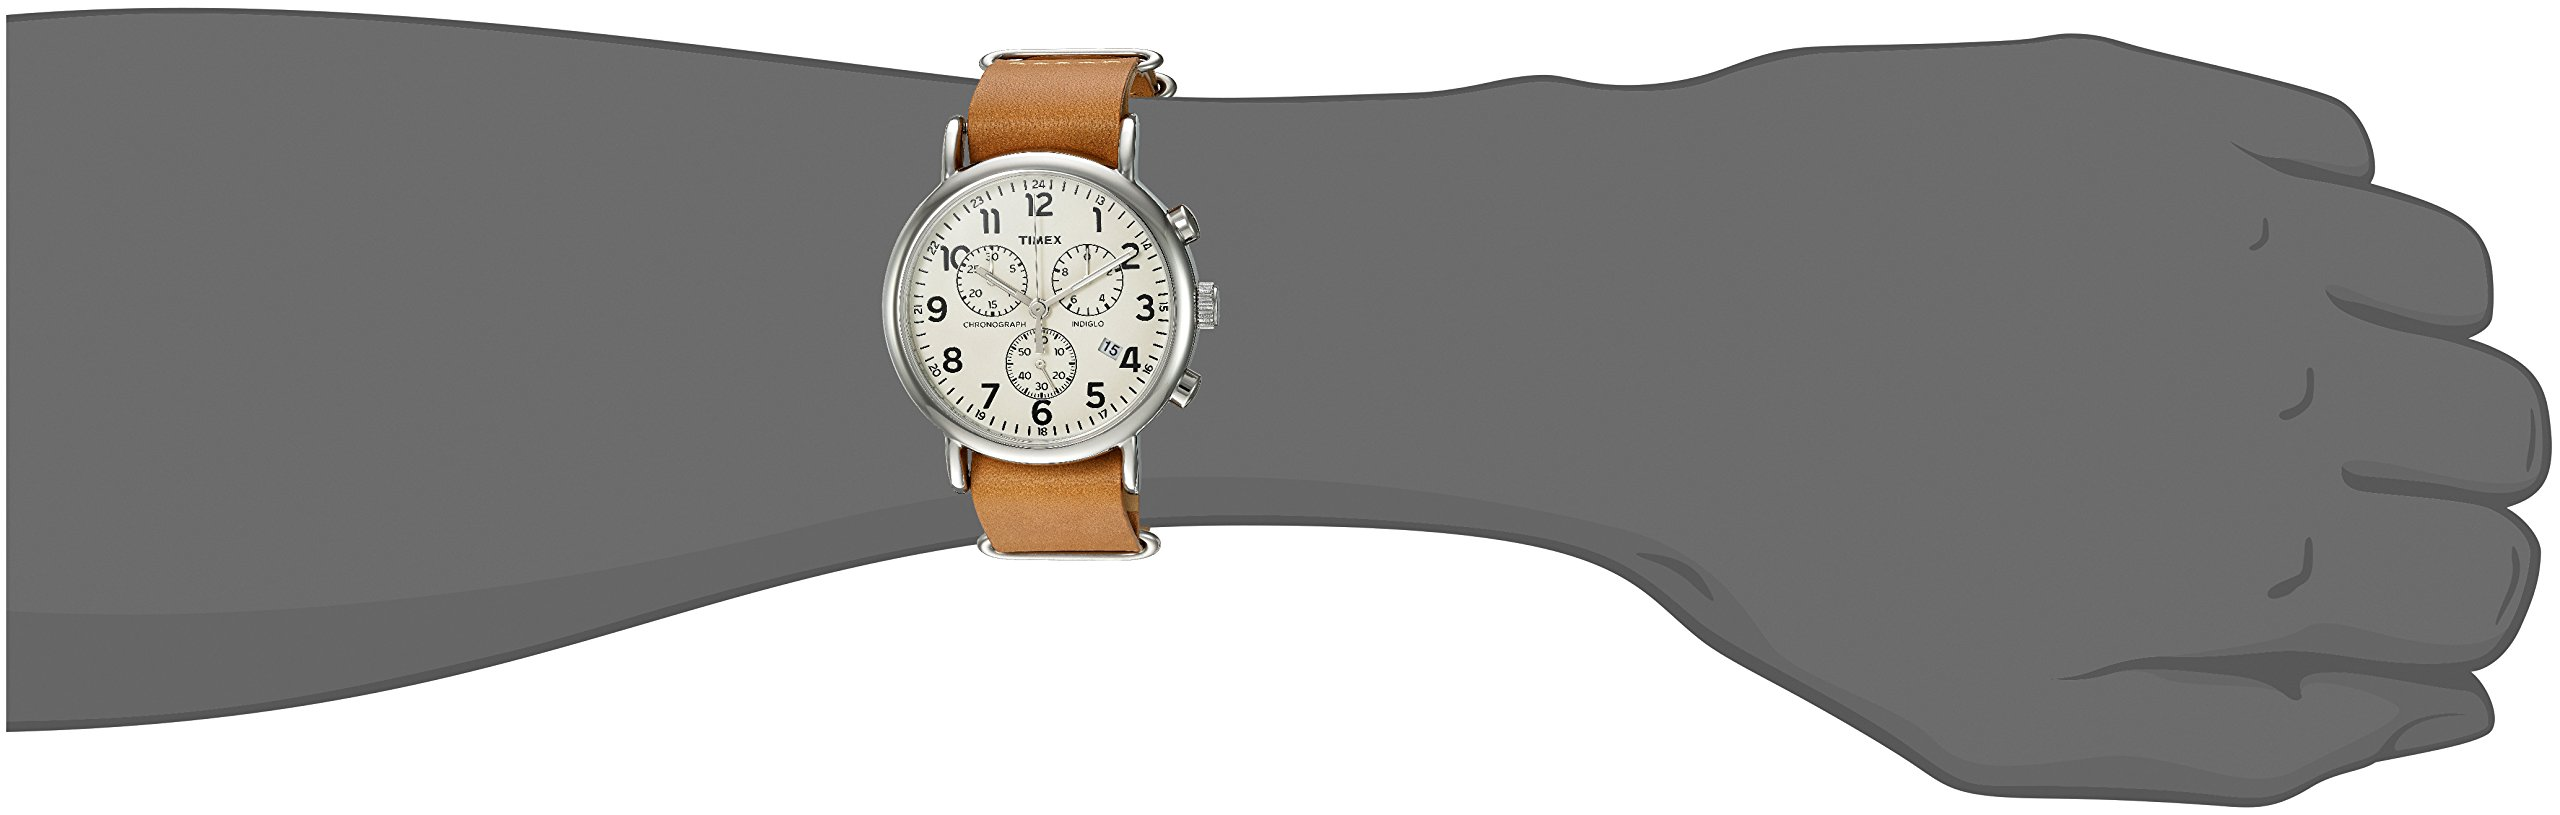 Timex Weekender Chrono Analog-Quartz Watch with Leather Strap, Brown, 20 (Model: TWC063500) by Timex (Image #5)